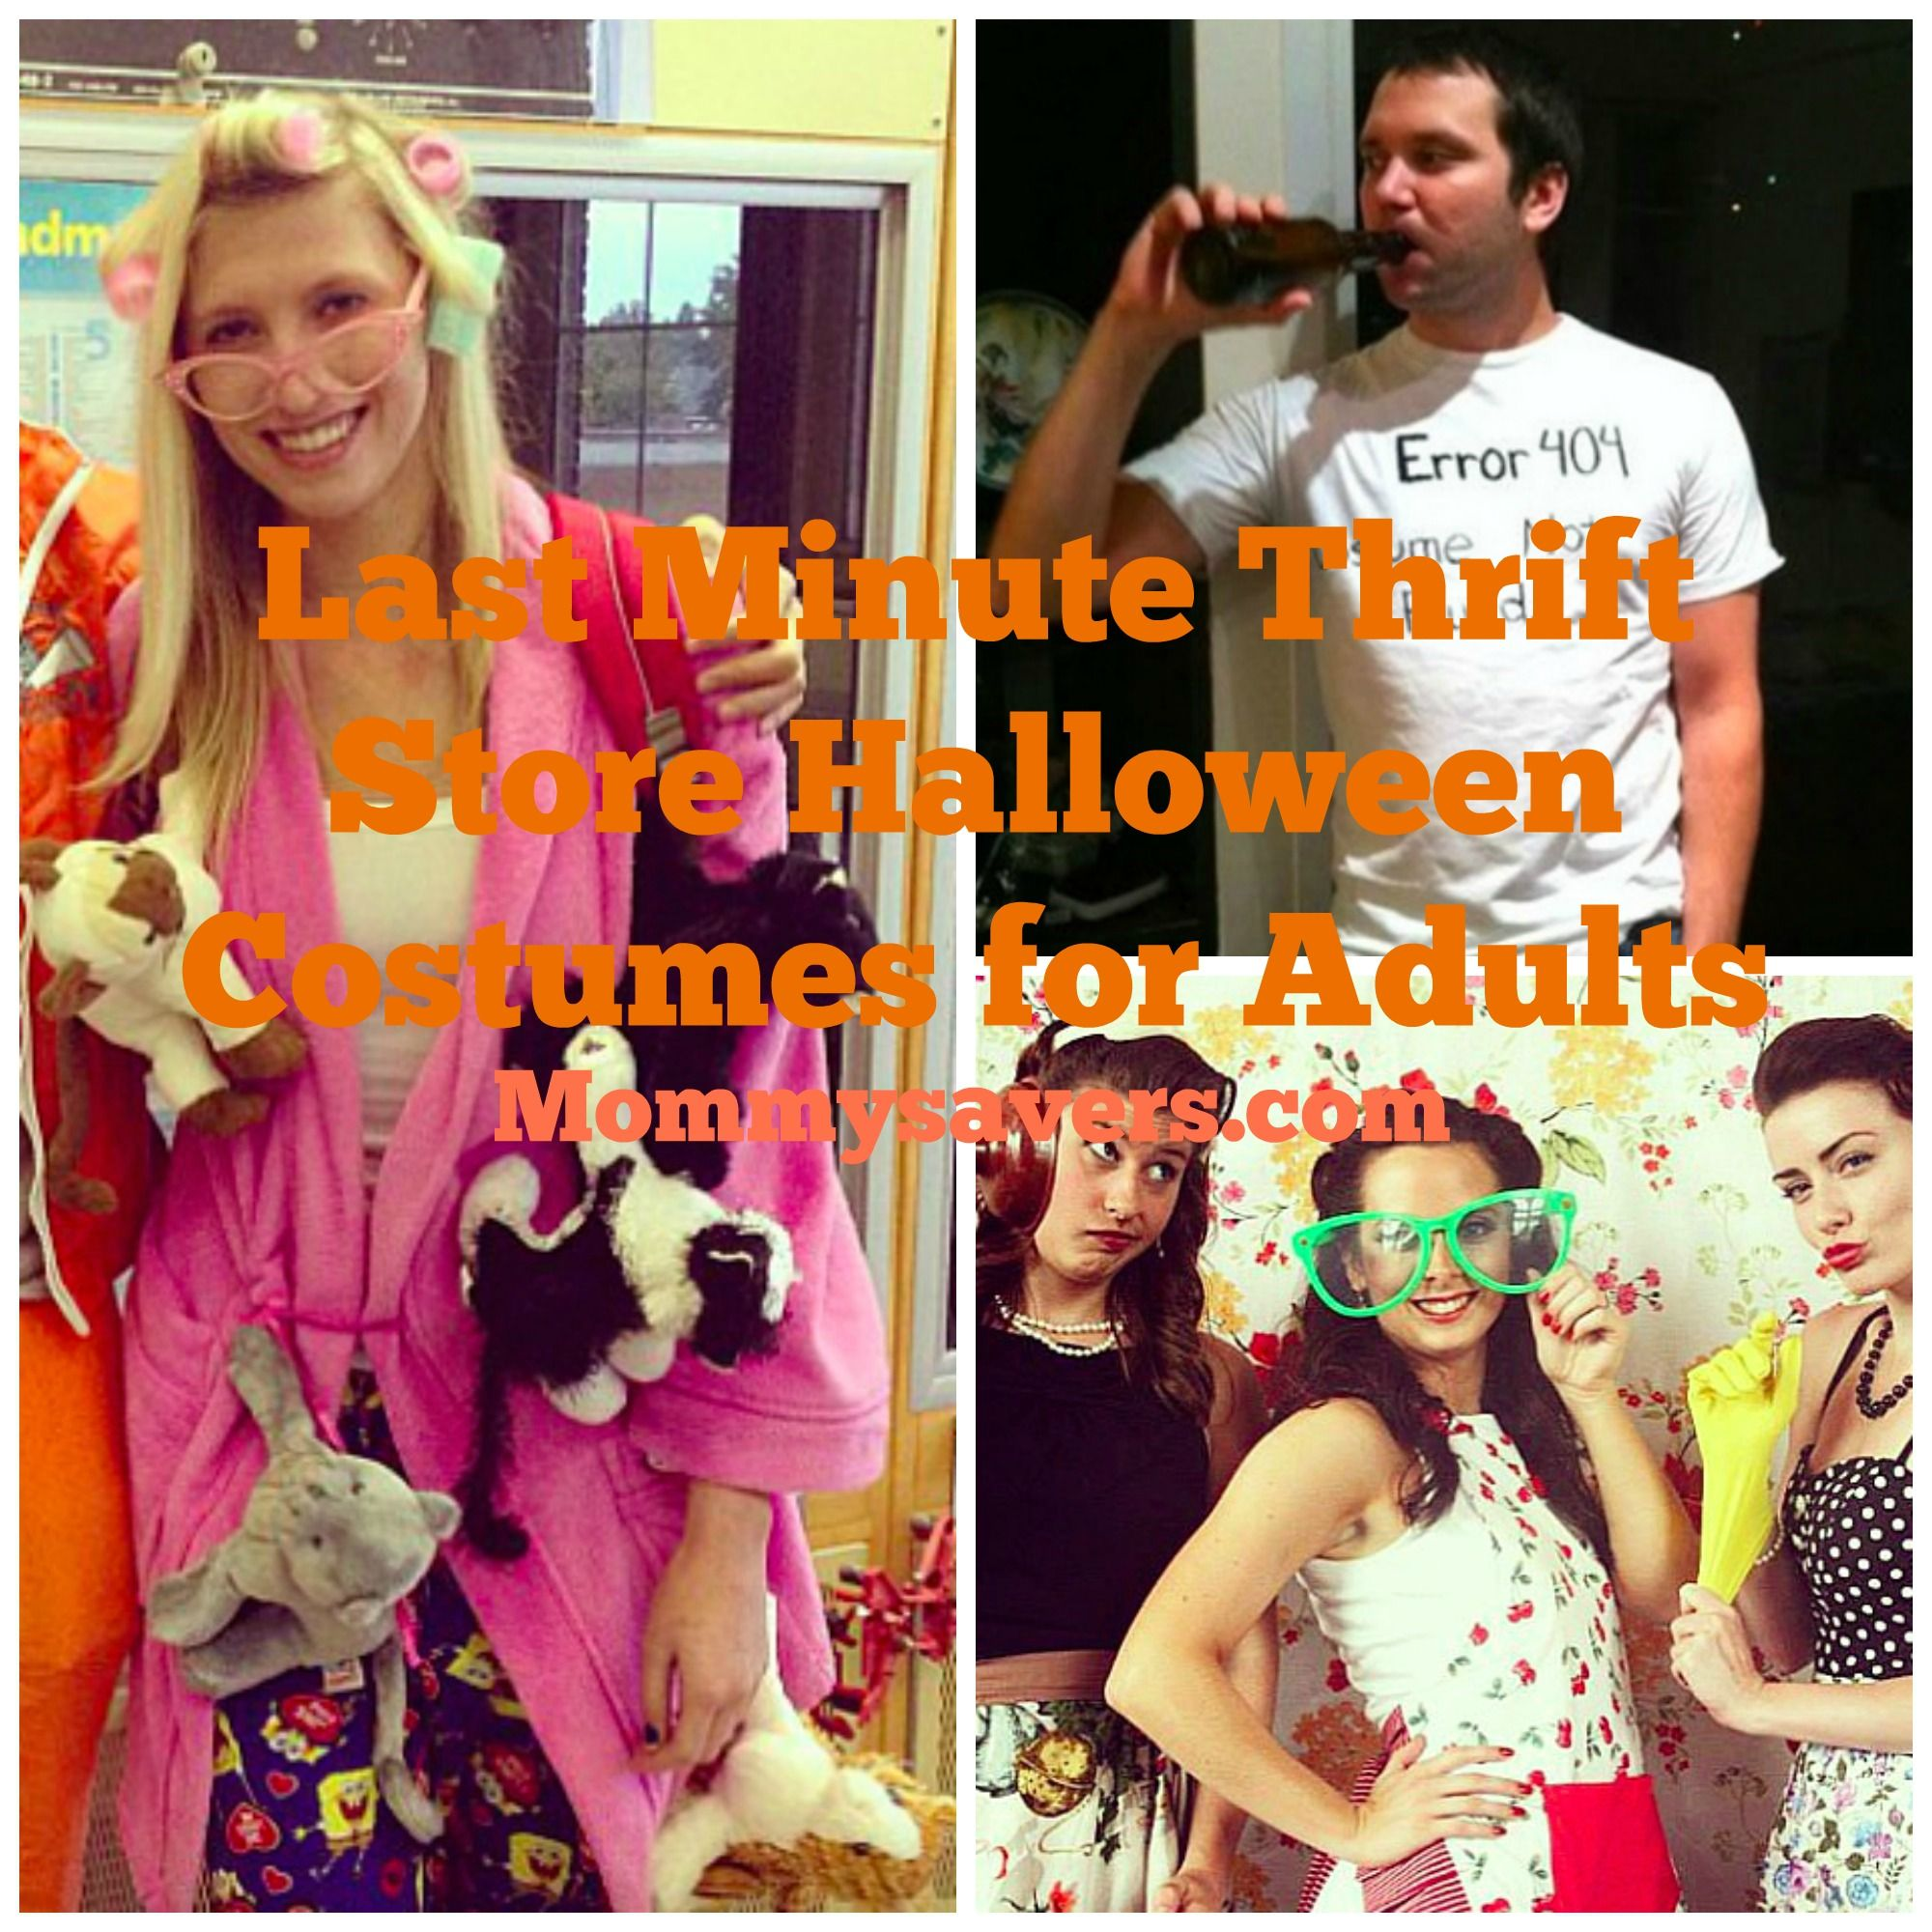 Last Minute Thrift Store Halloween Costume Ideas For Adults With